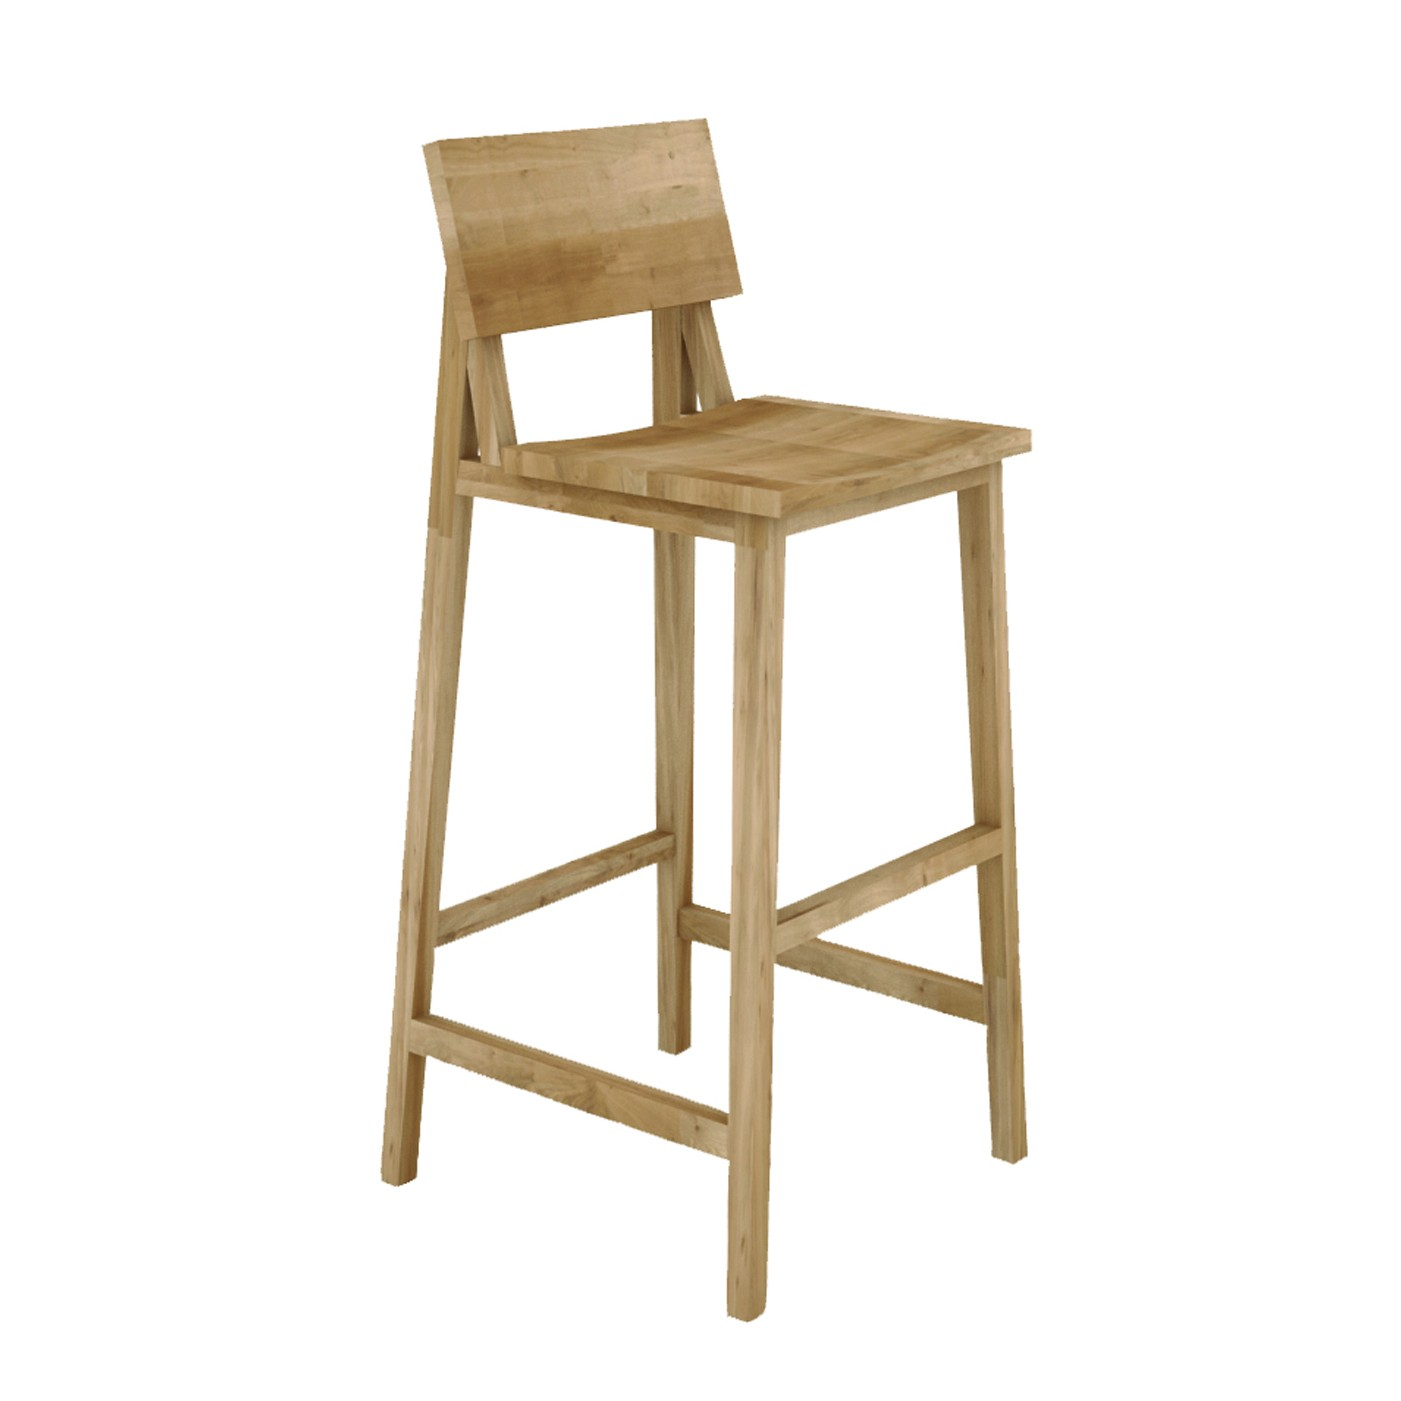 High Chair Stool Ethnicraft Oak N4 Kitchen Counter Stool Without Amrest